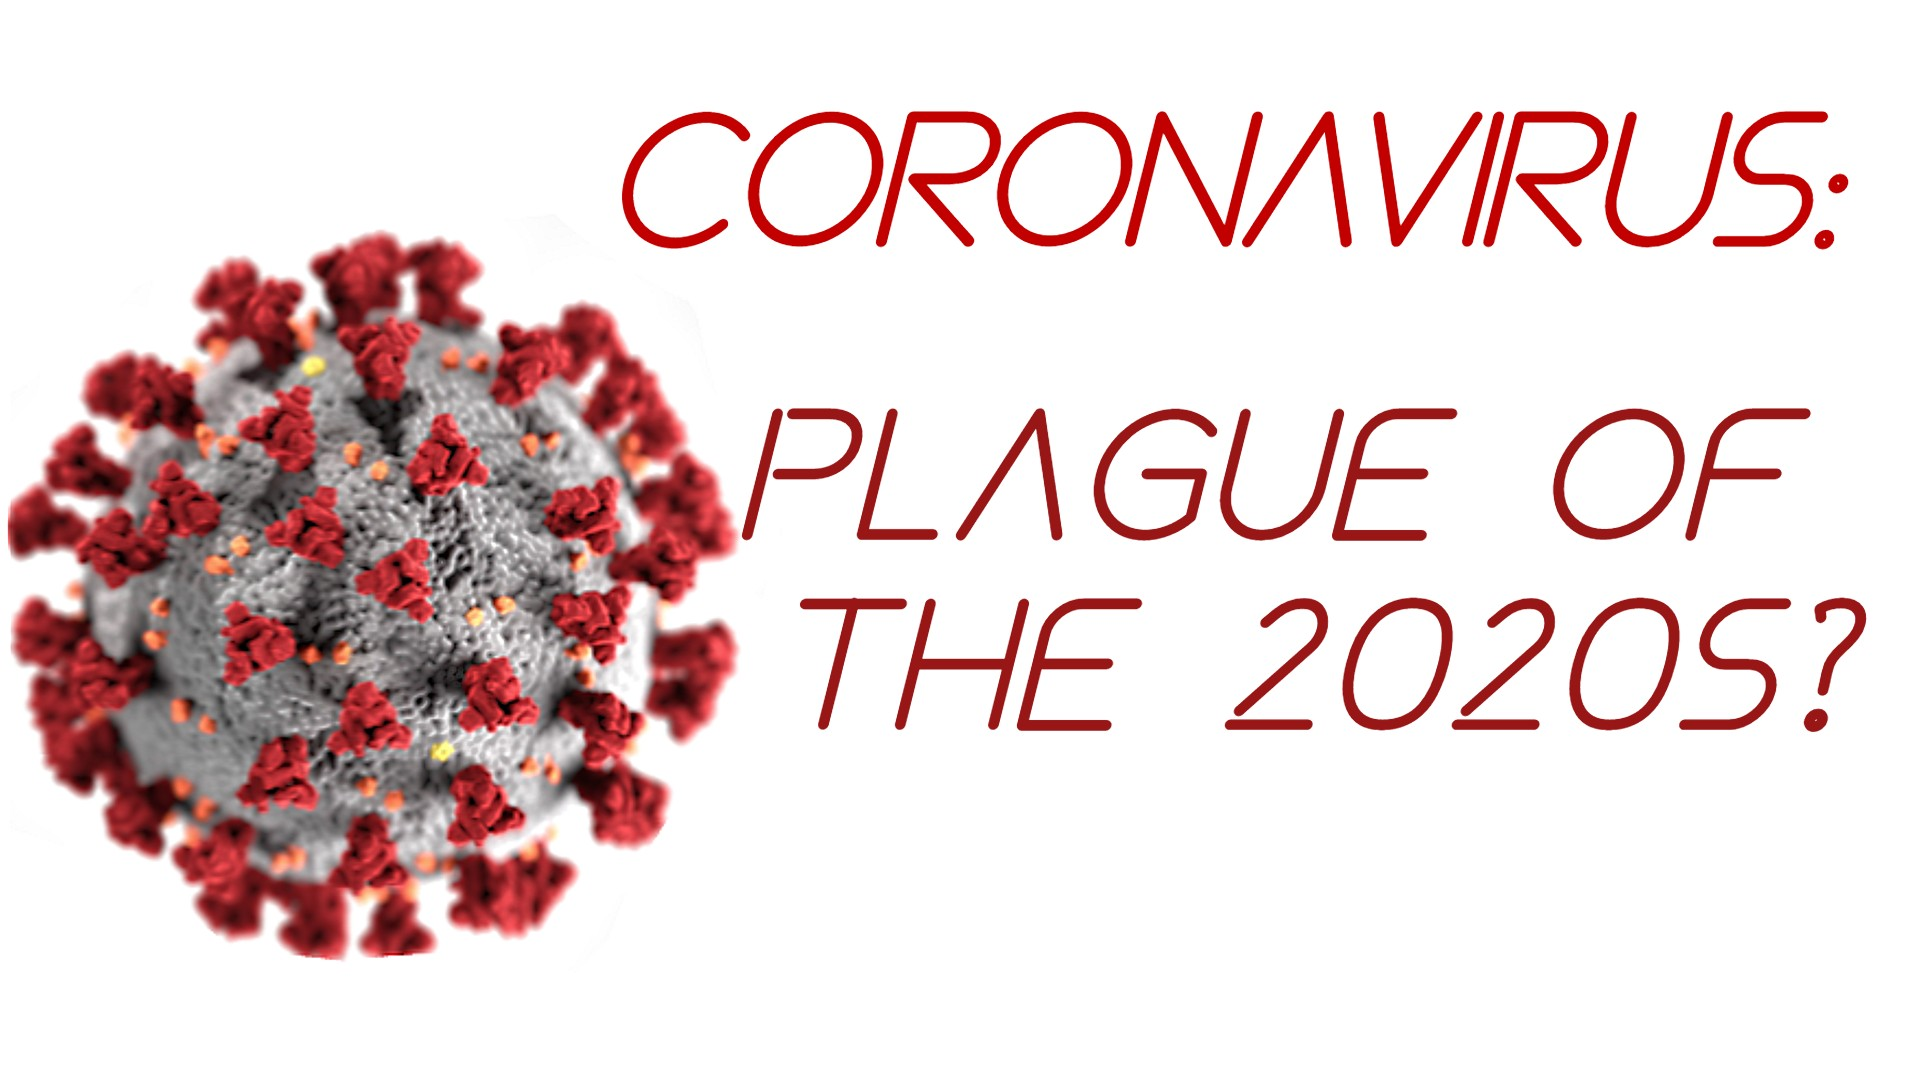 Coronavirus: Plague of the 2020s?